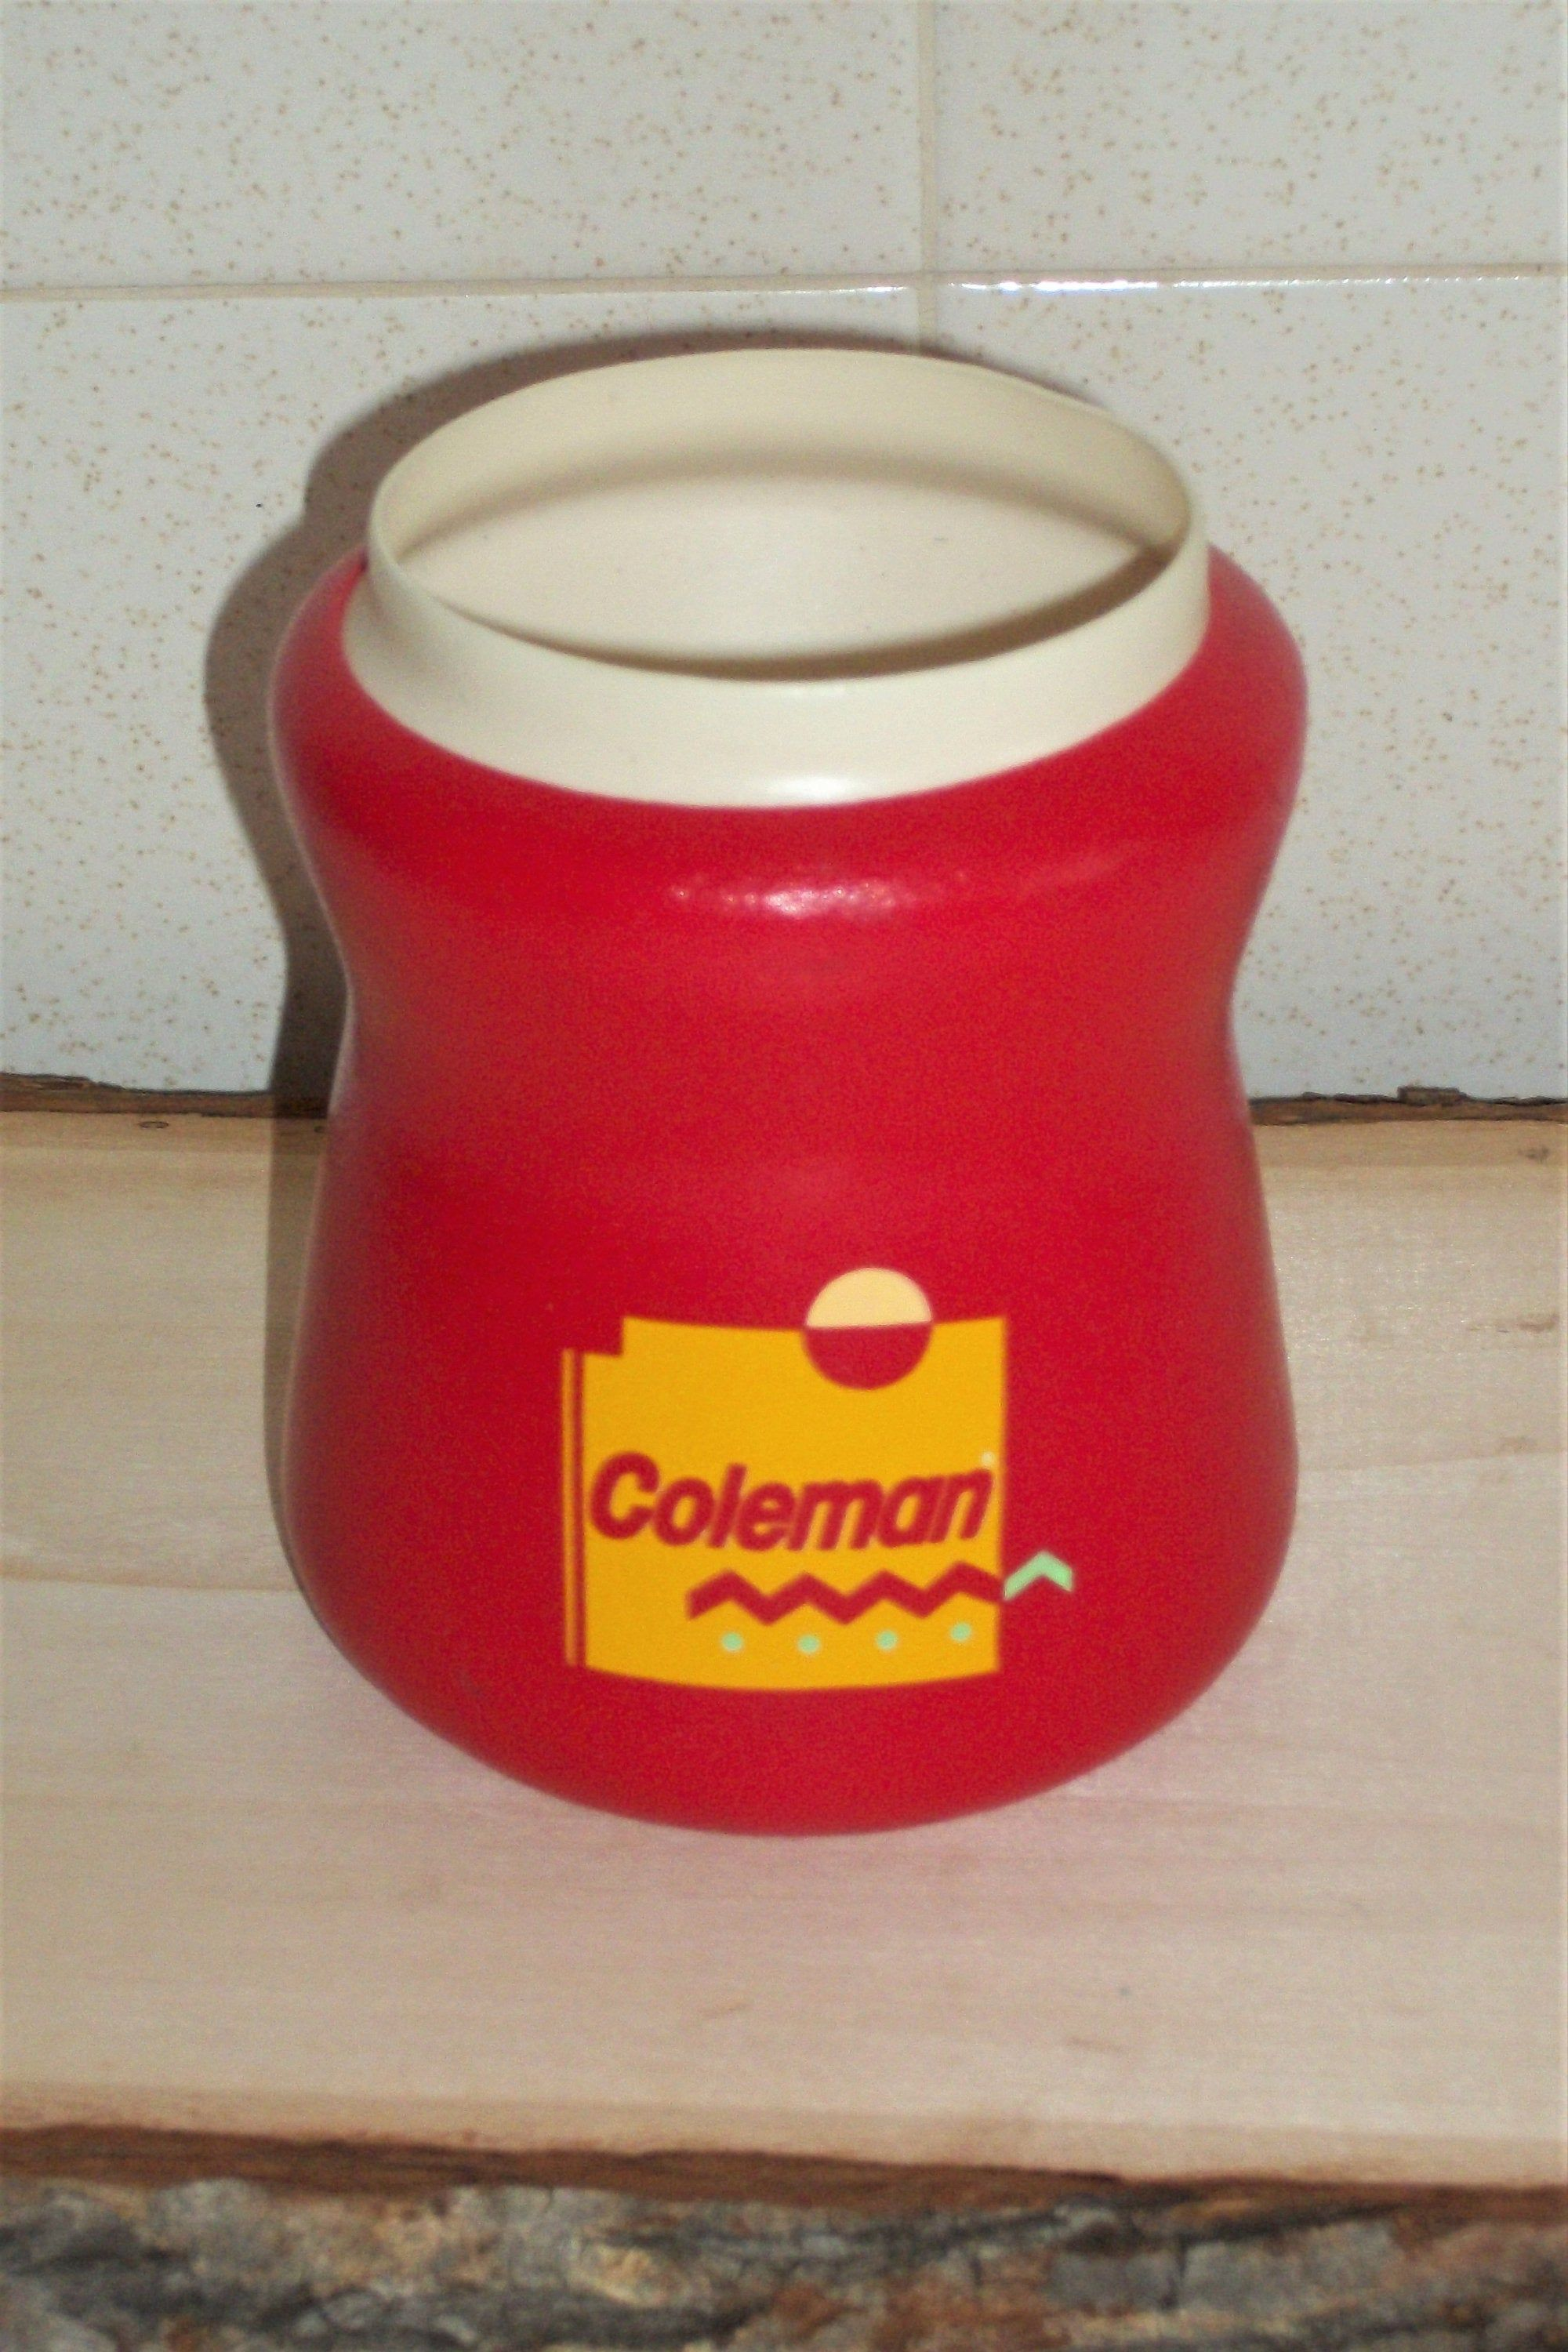 70s Vintage Coleman Koozie Can Cooler Soda Beer Beverage Foam Cooler Coozie Coozy Camping Drinking 1970s Retro Cozie In 2020 Camping Drinks Canning Red Foams